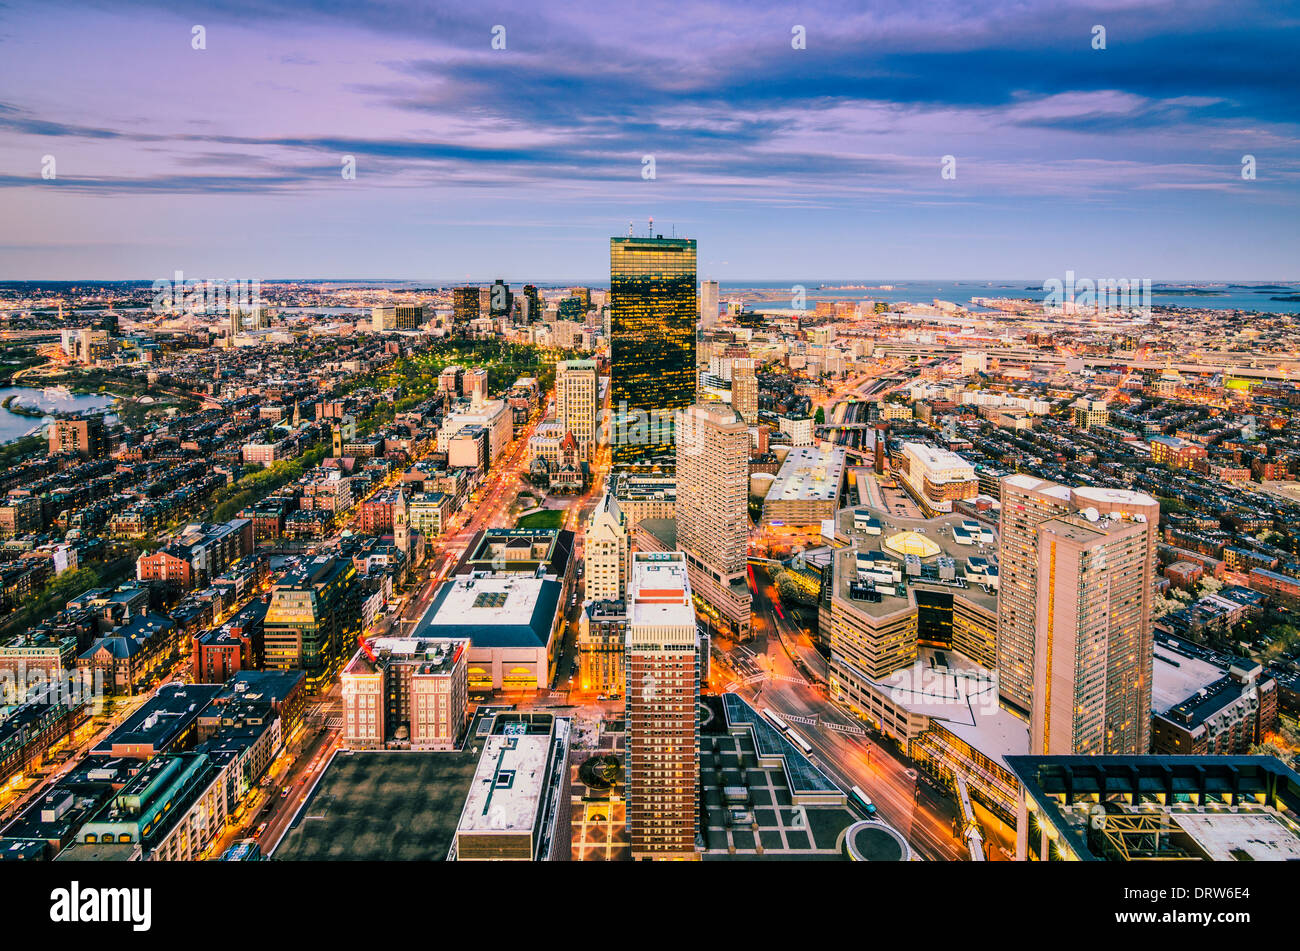 Boston, Massachusetts skyline - Stock Image